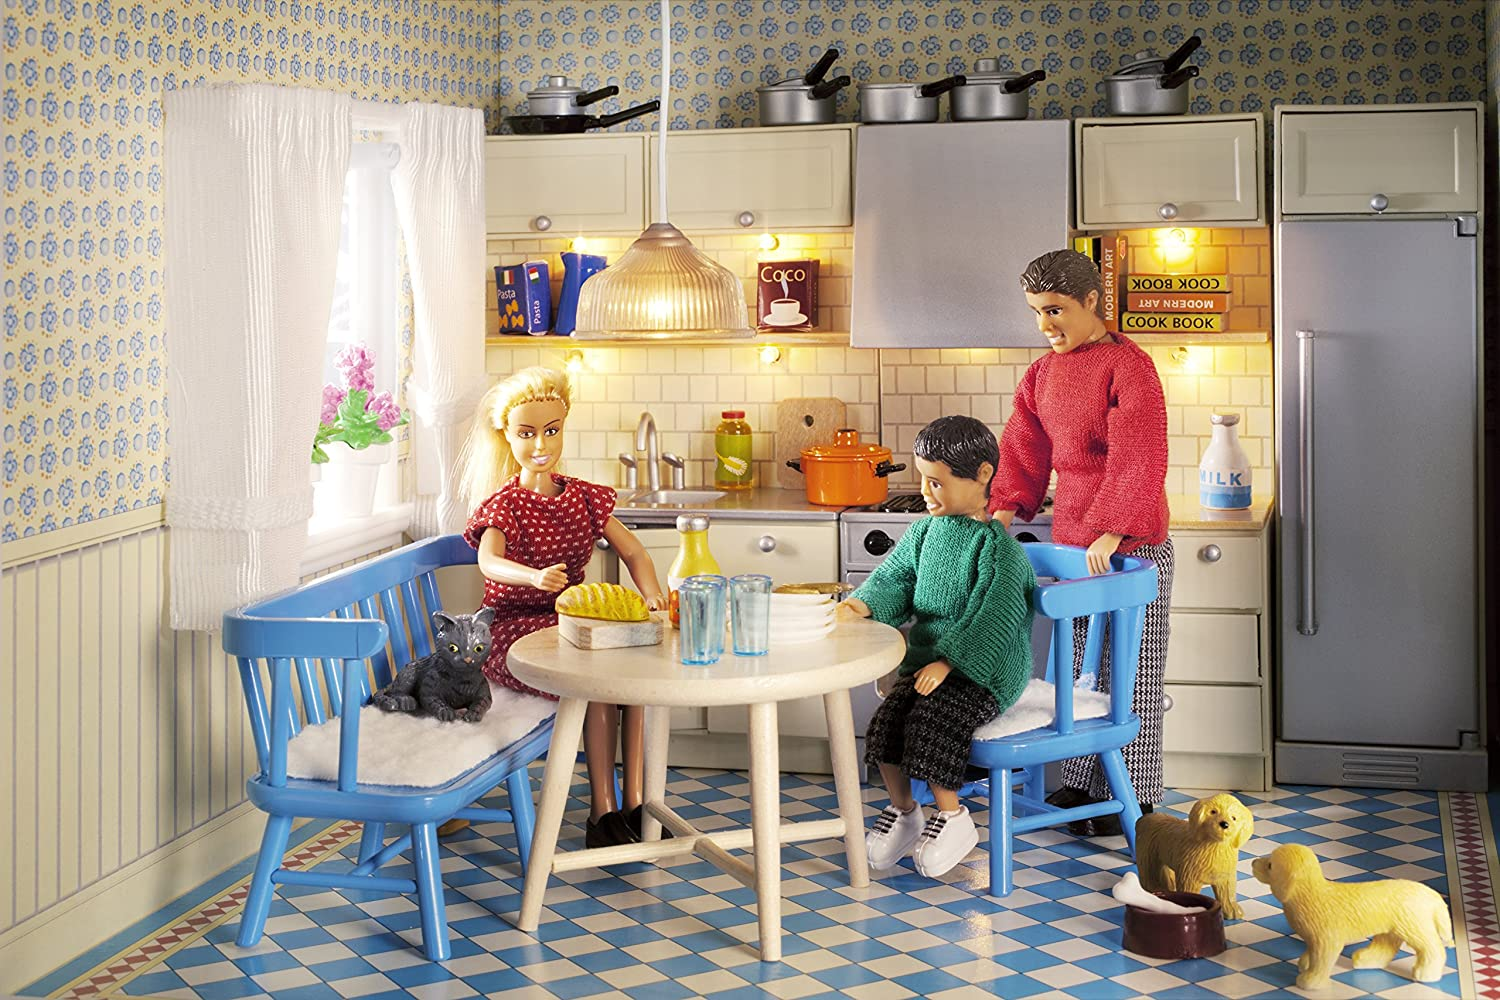 804a4d95b6fe Lundby 1:18 Scale Dolls House Smaland Kitchen Furniture Set: Amazon.co.uk:  Toys & Games